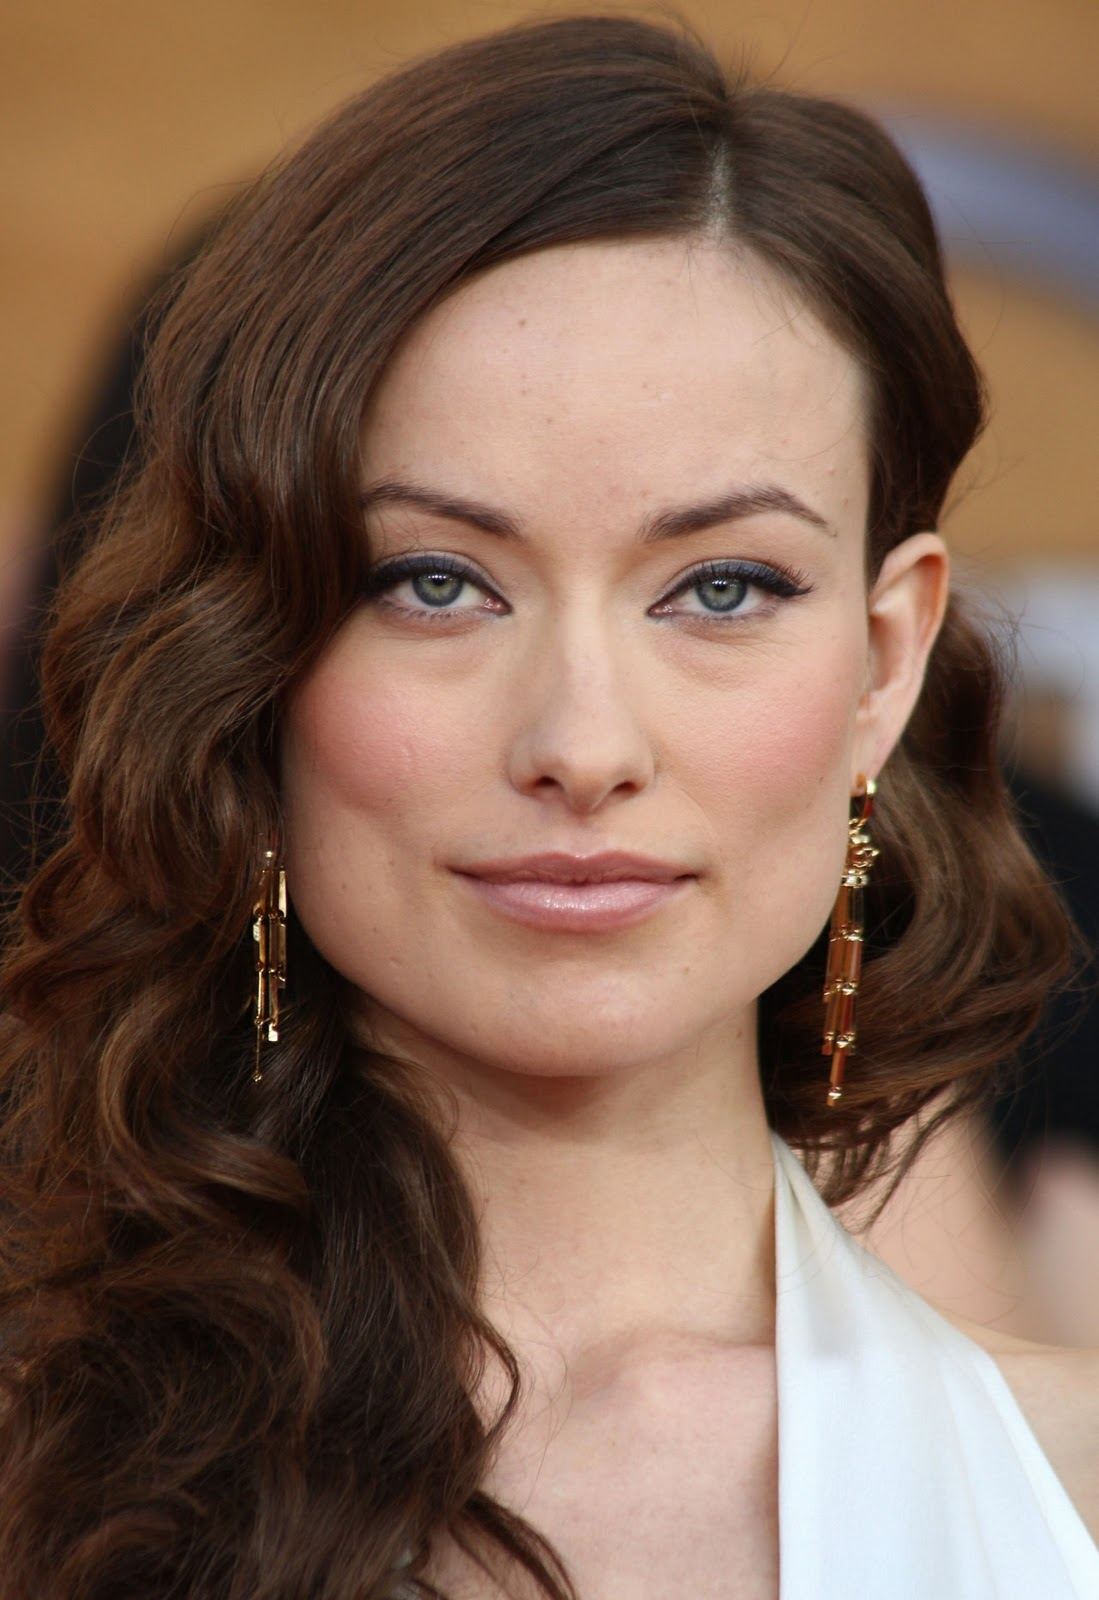 Olivia Wilde Profile And New Pictures 2013: Olivia Wilde Pictures Gallery (26)